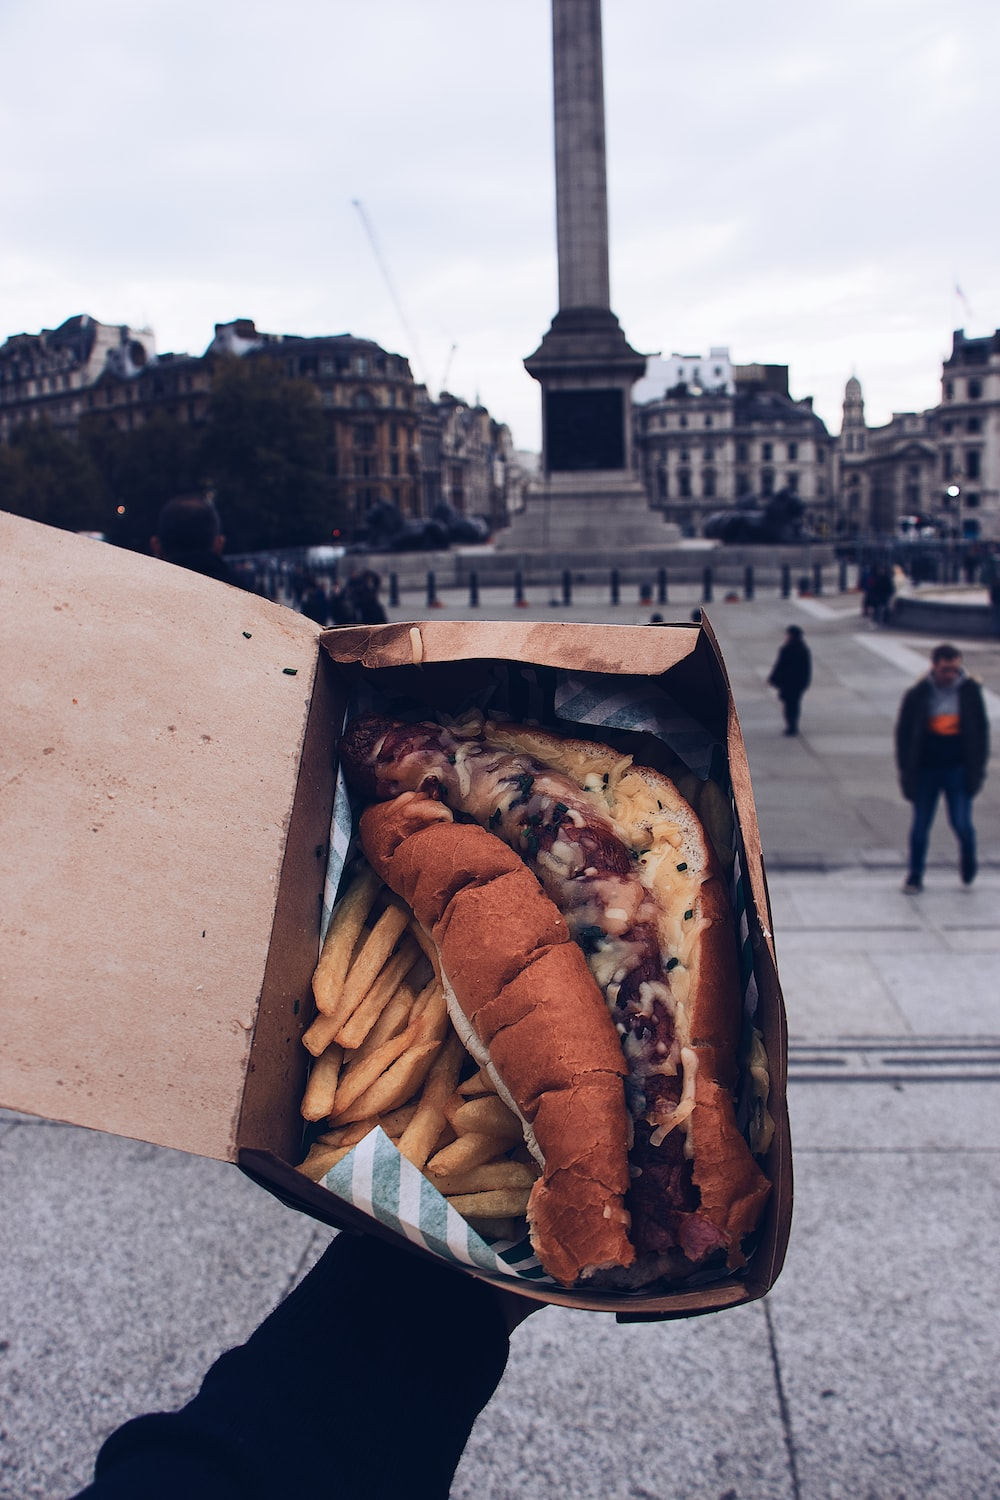 sausage with bun and fries